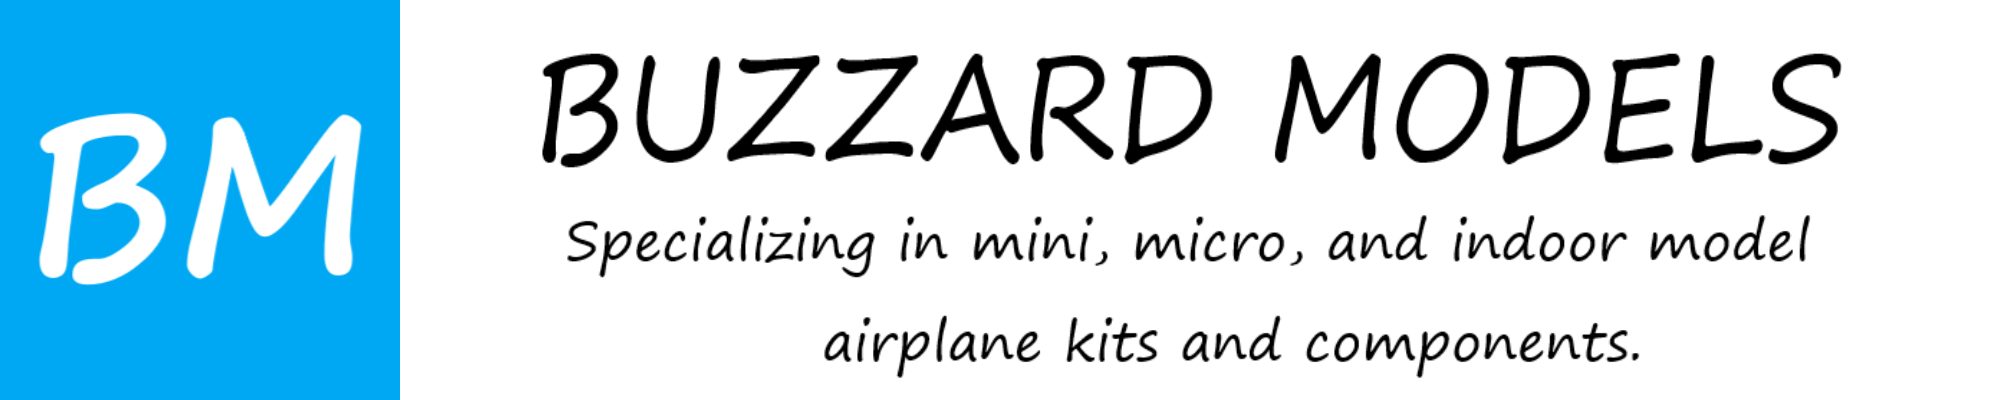 Buzzard Models